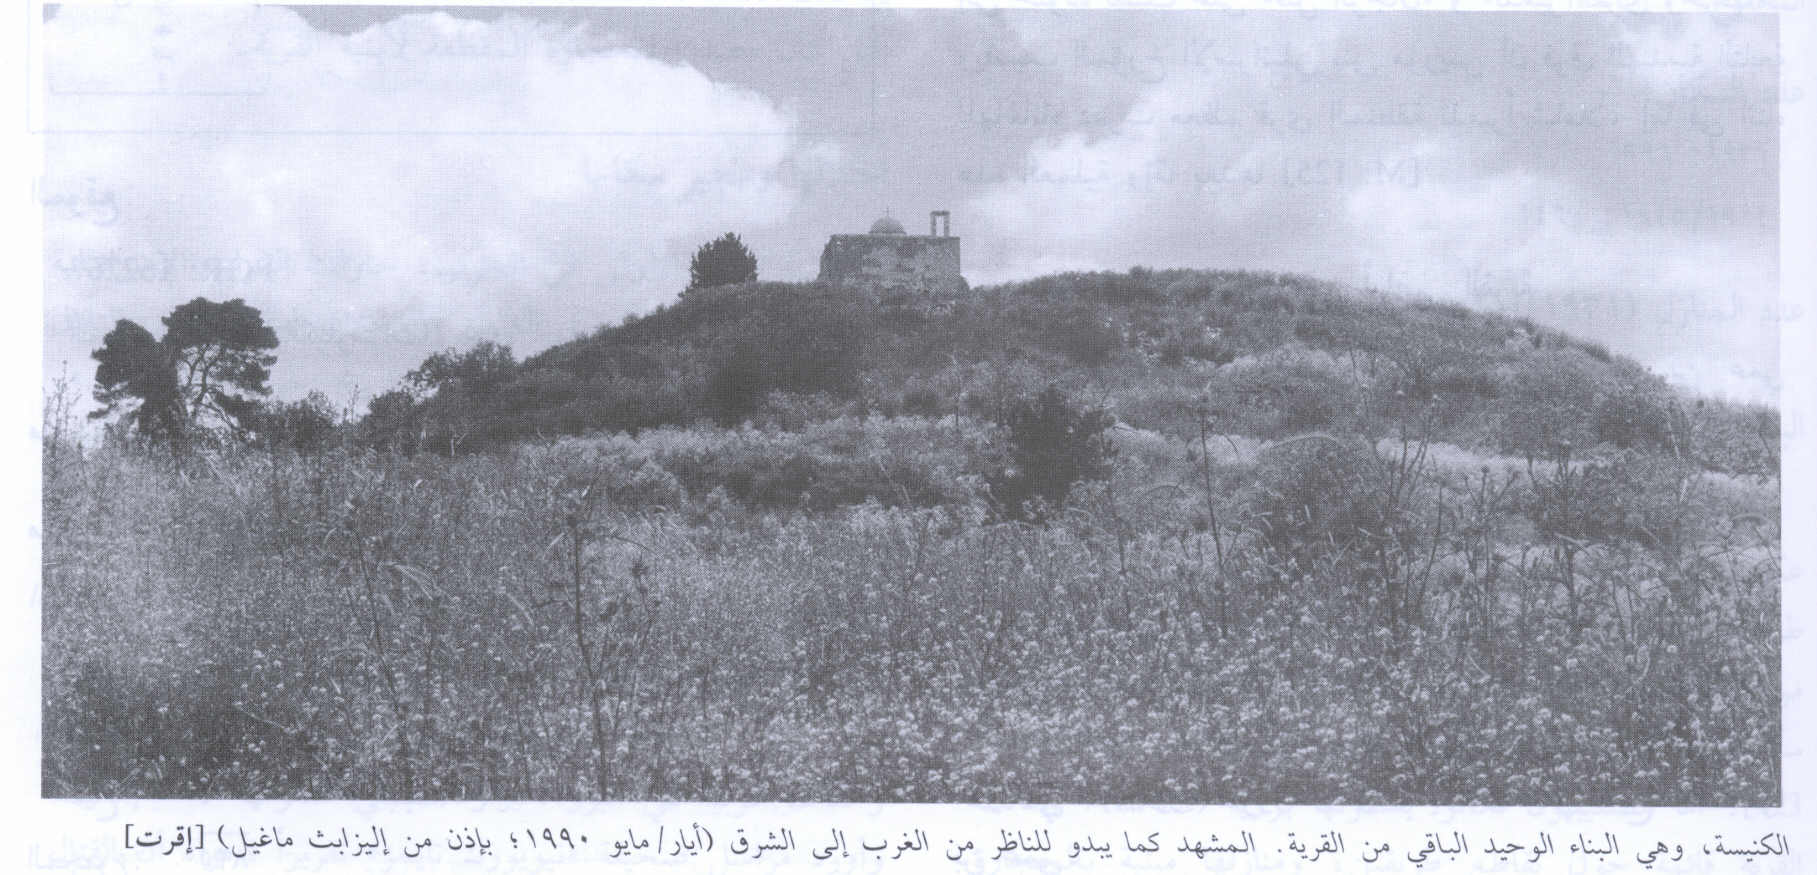 Iqrit - إقرت : Iqrit Church In 1990